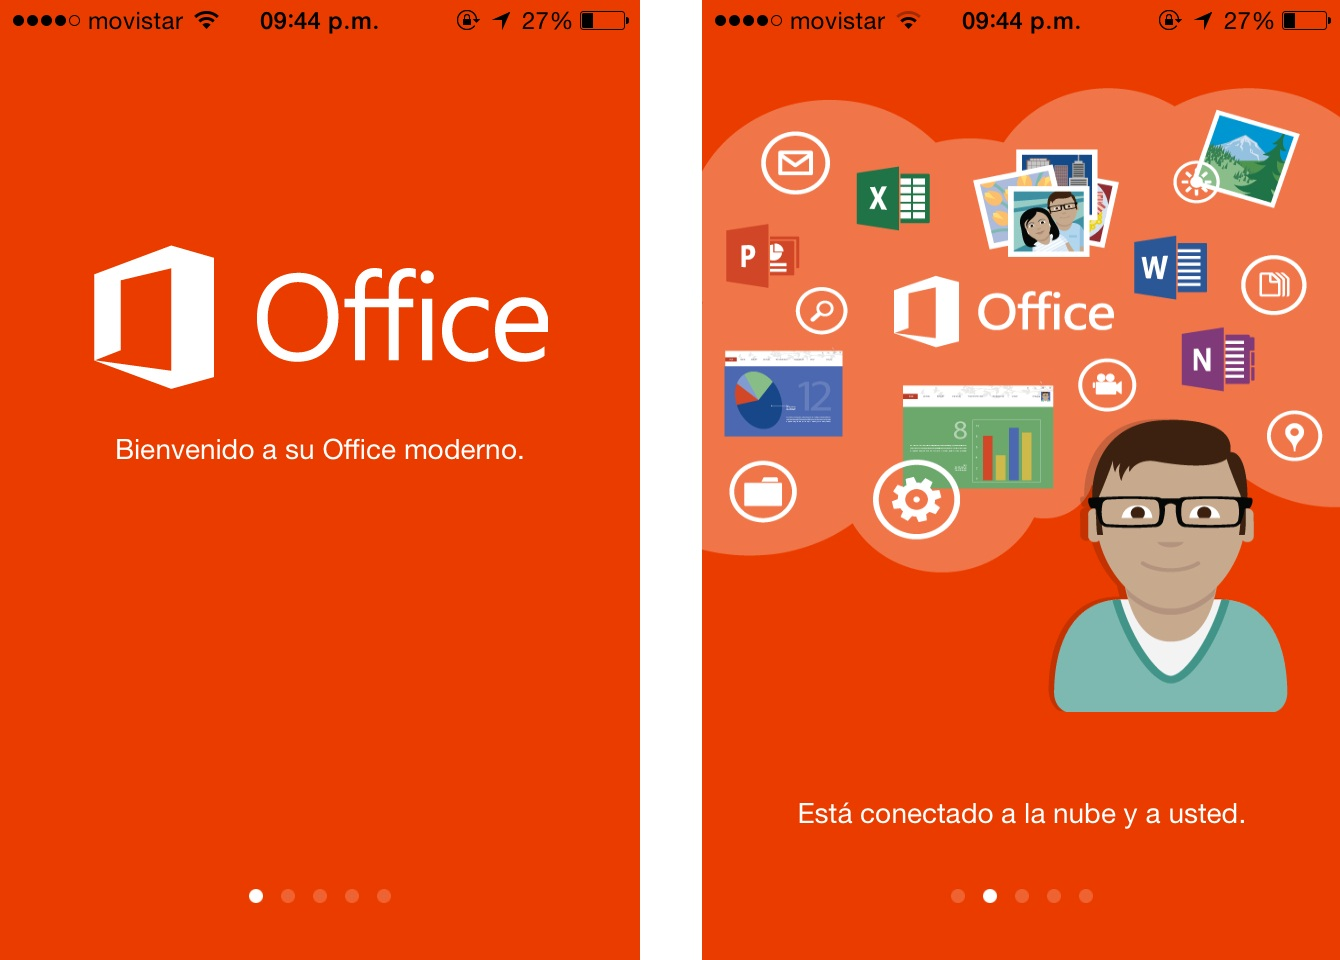 Office para iPhone y Android ya es gratis 2